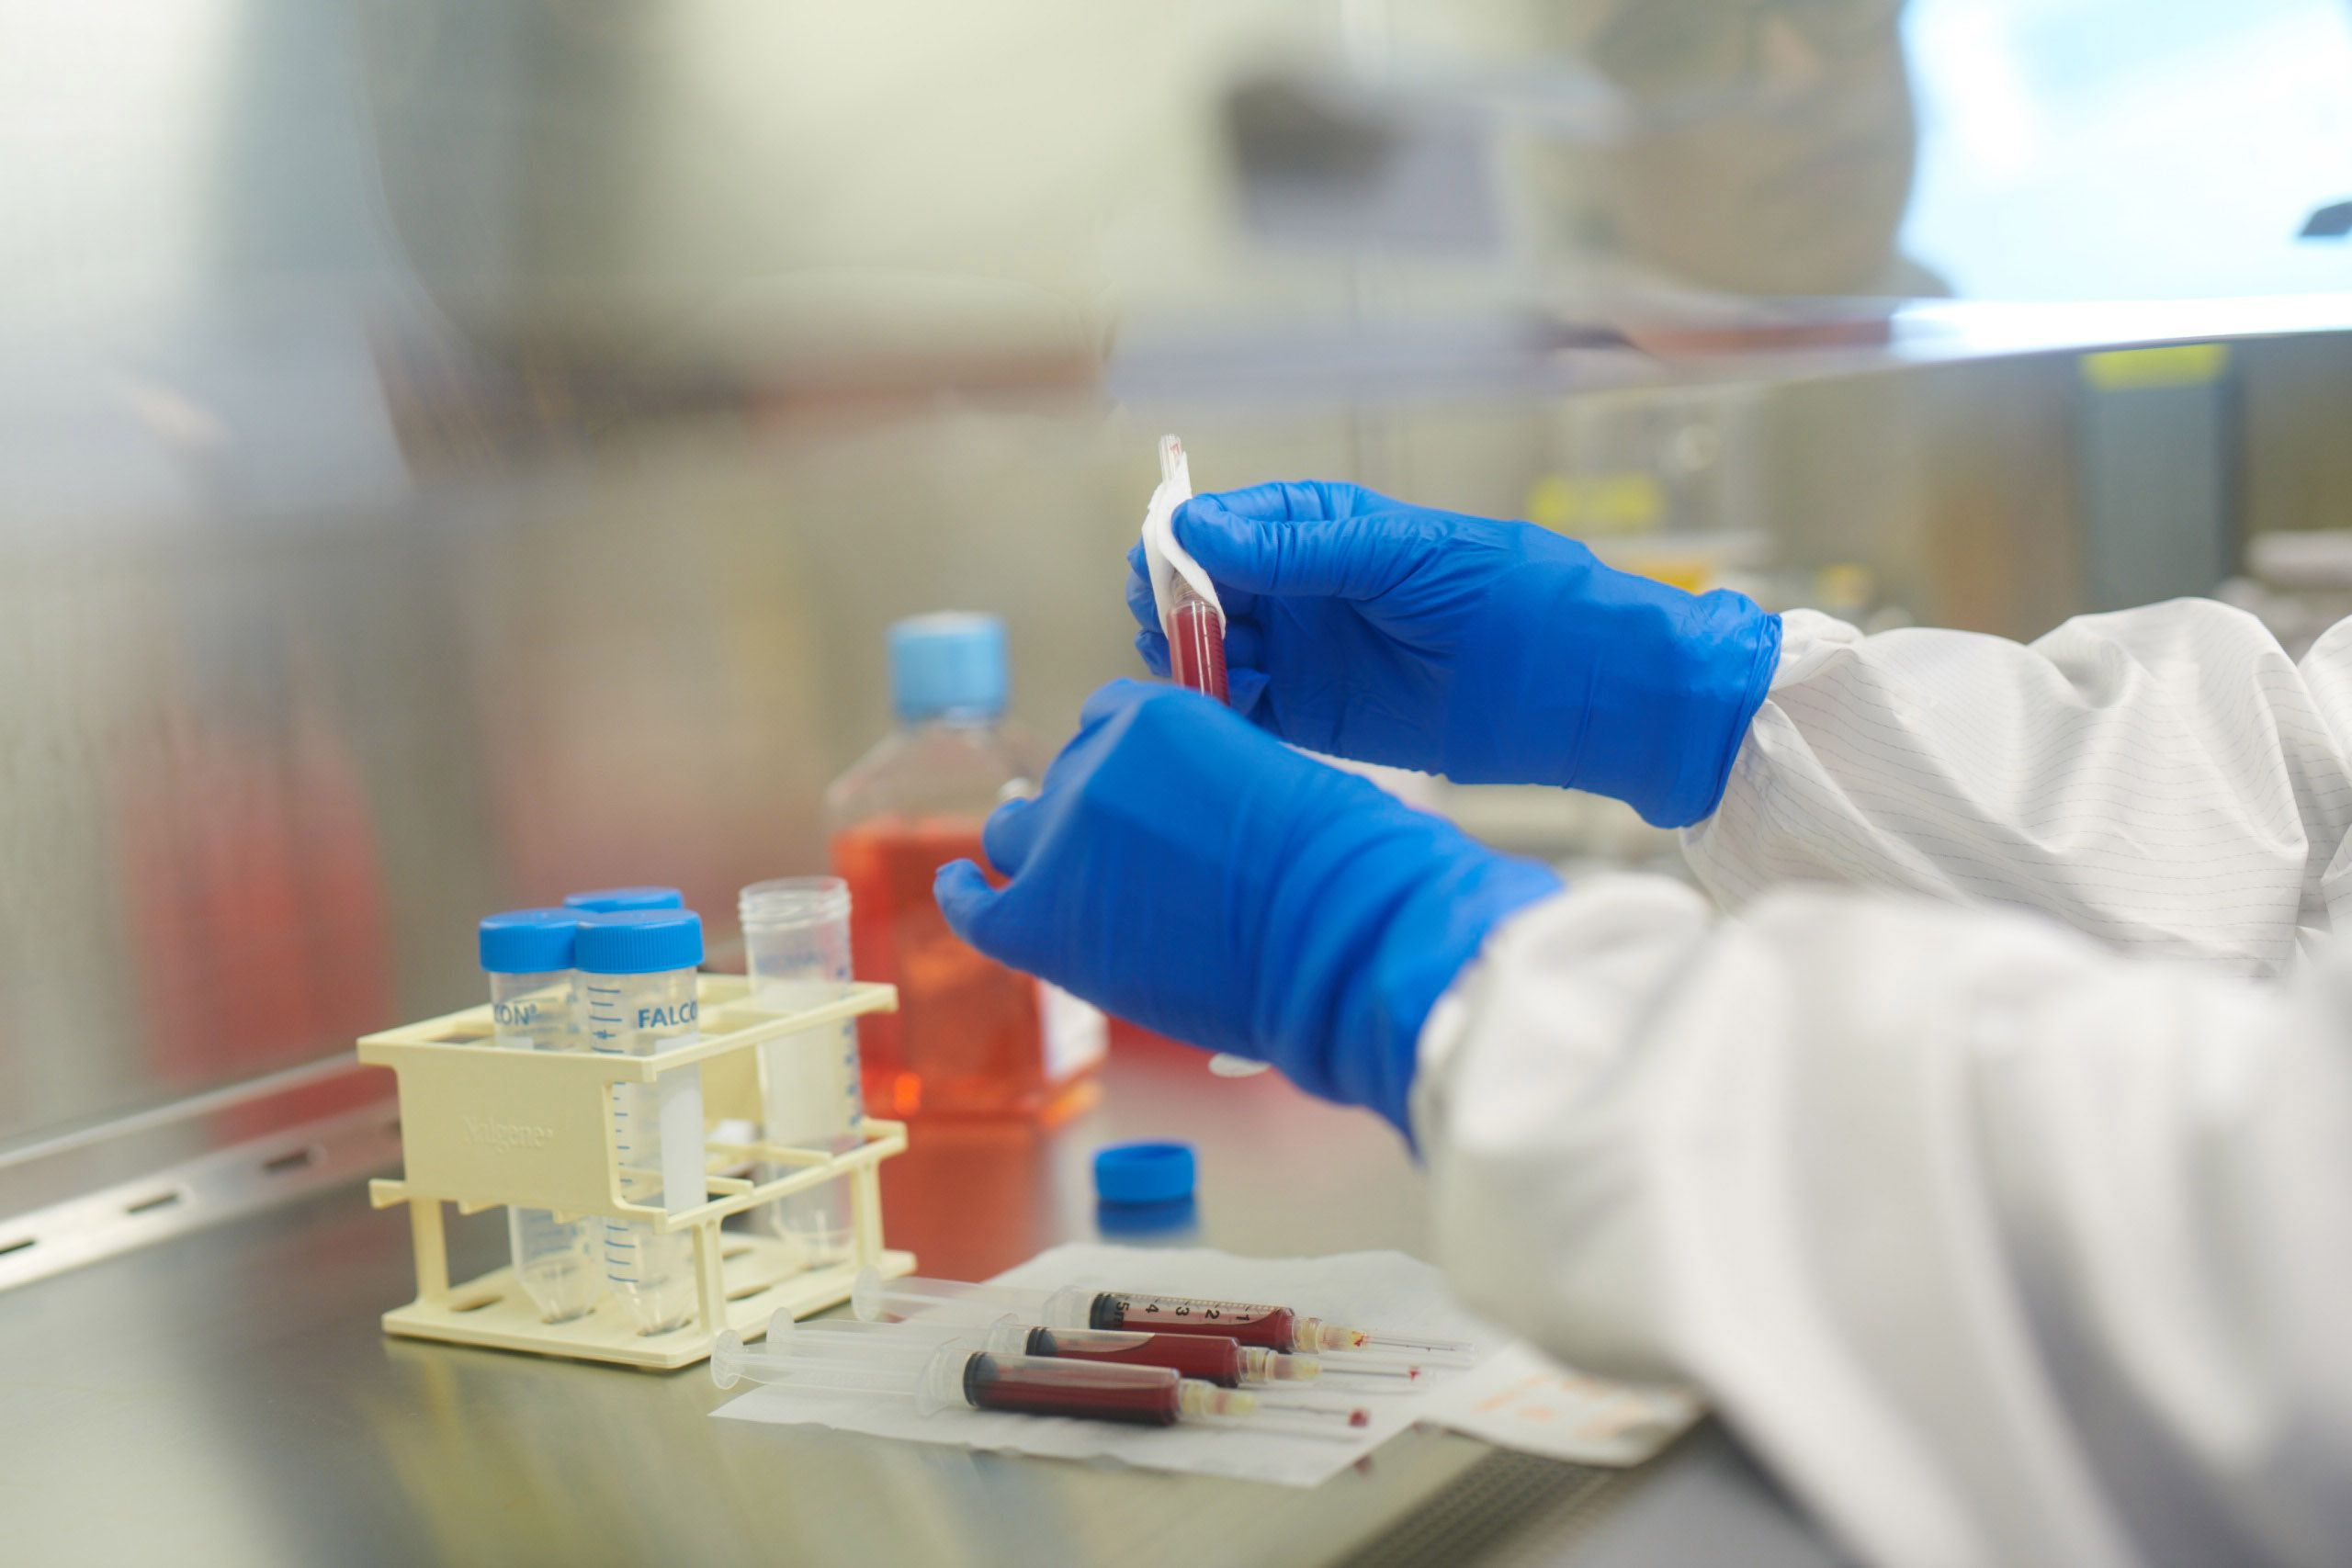 Boston's biotech boom could bring bold new treatments for